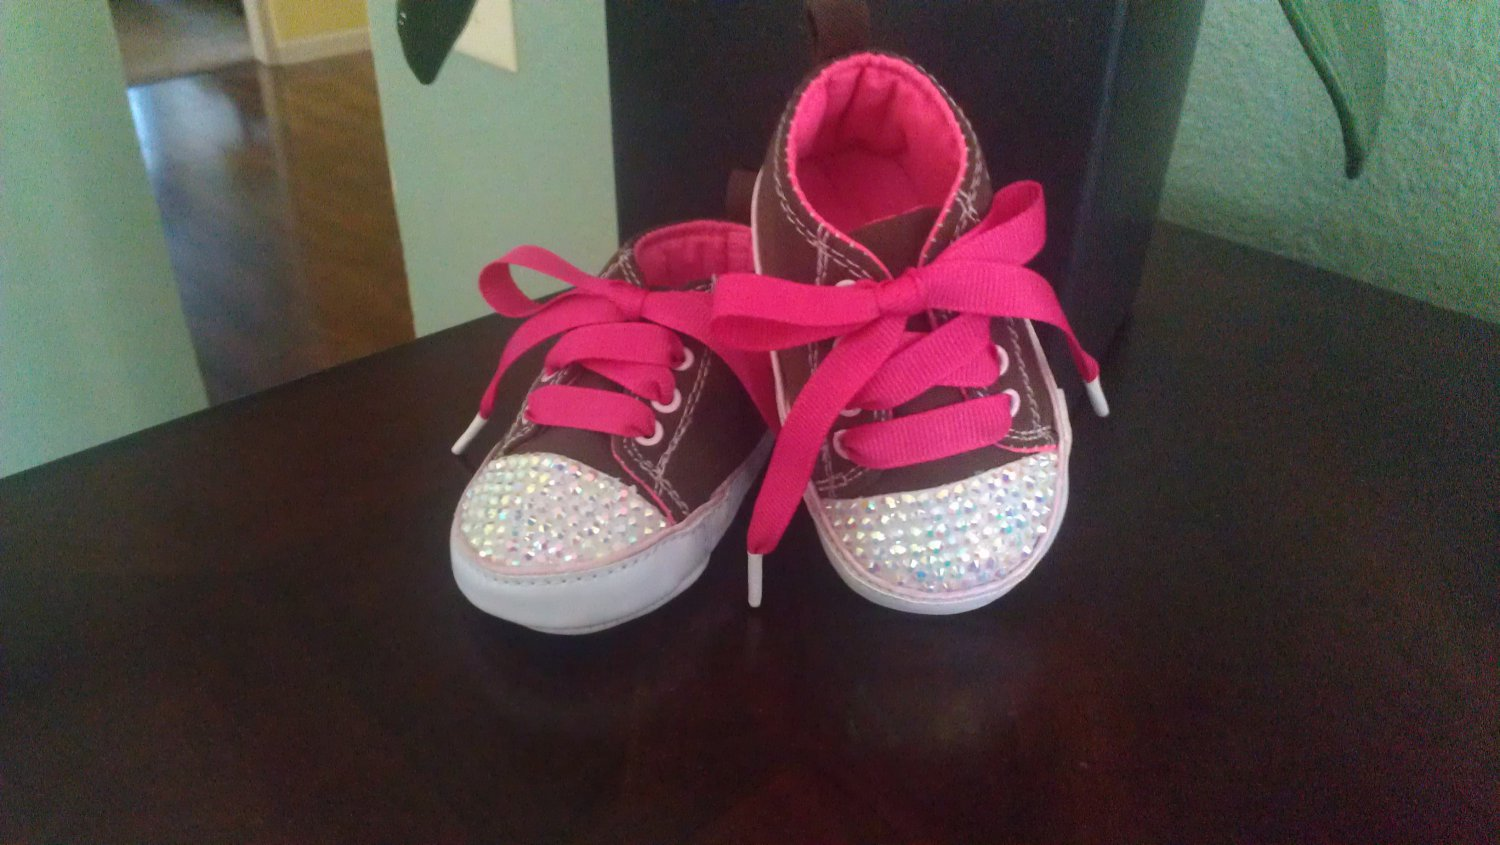 Jewel Newborn/Infant crystal sneakers size 0-3 months